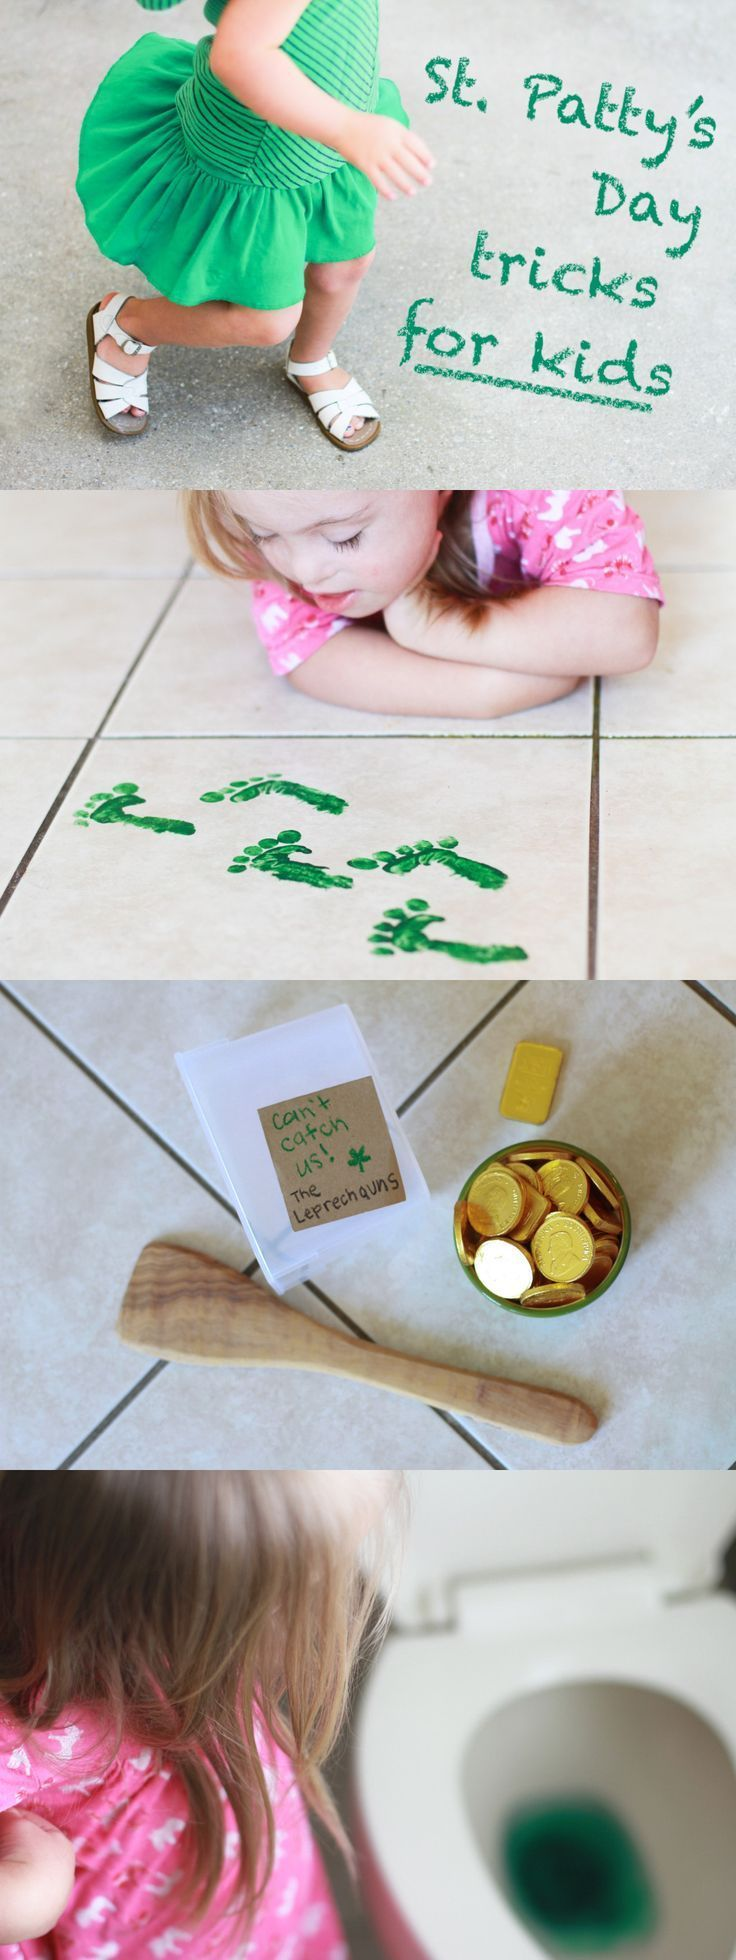 How to Catch a Leprechaun and Other St. Patricks Day Tricks for Kids